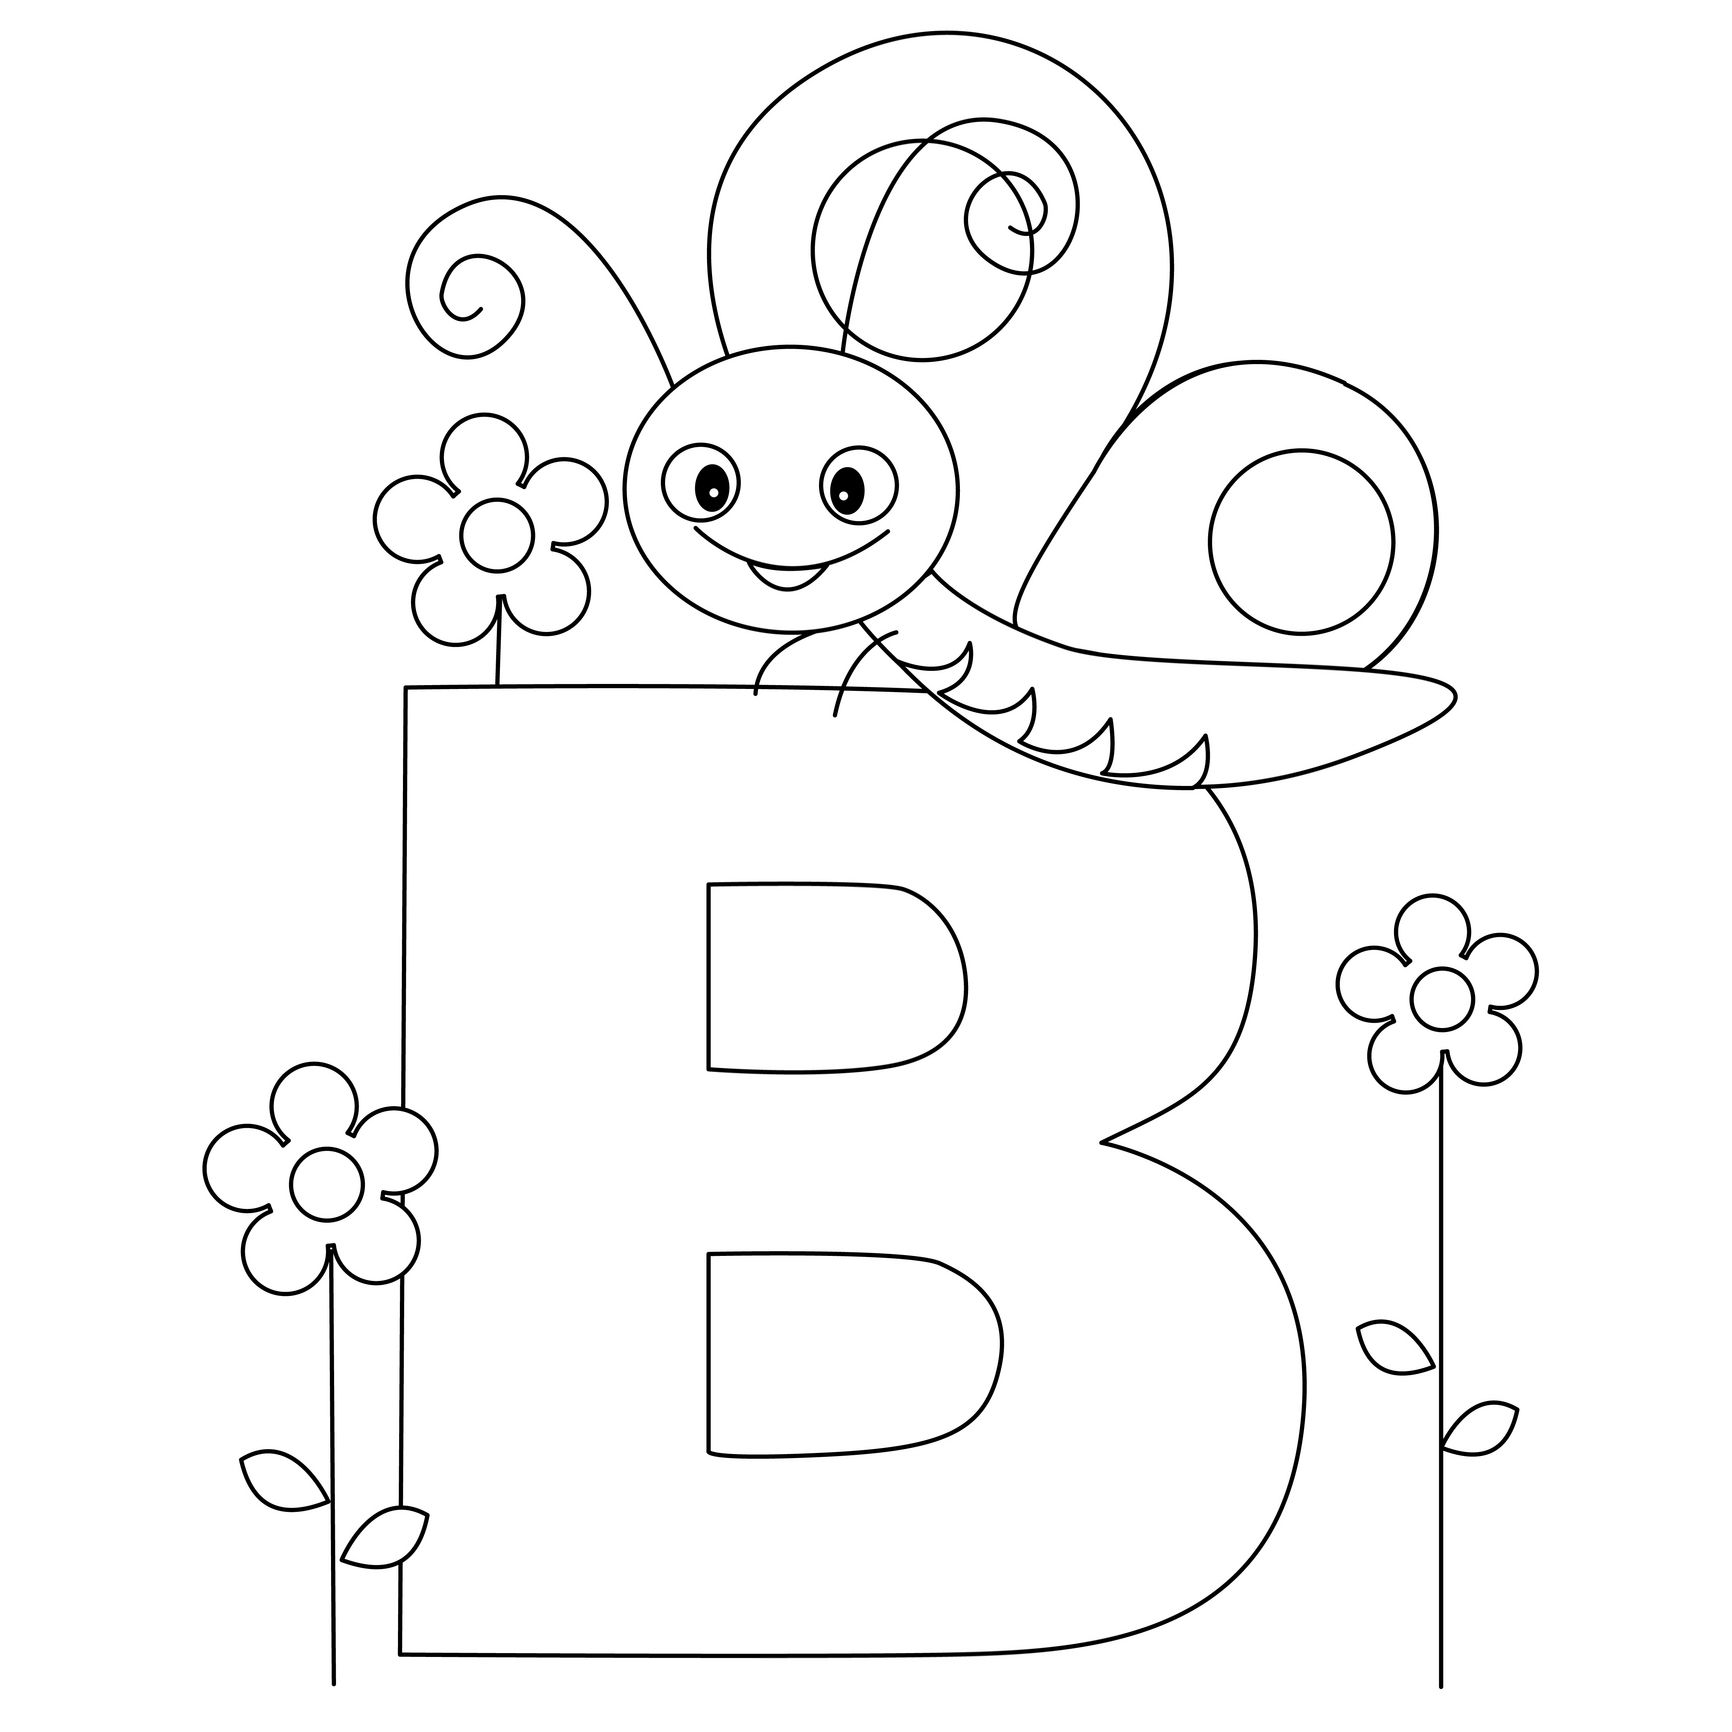 Animal Alphabet Letter B Is For Butterfly HereS A Simple